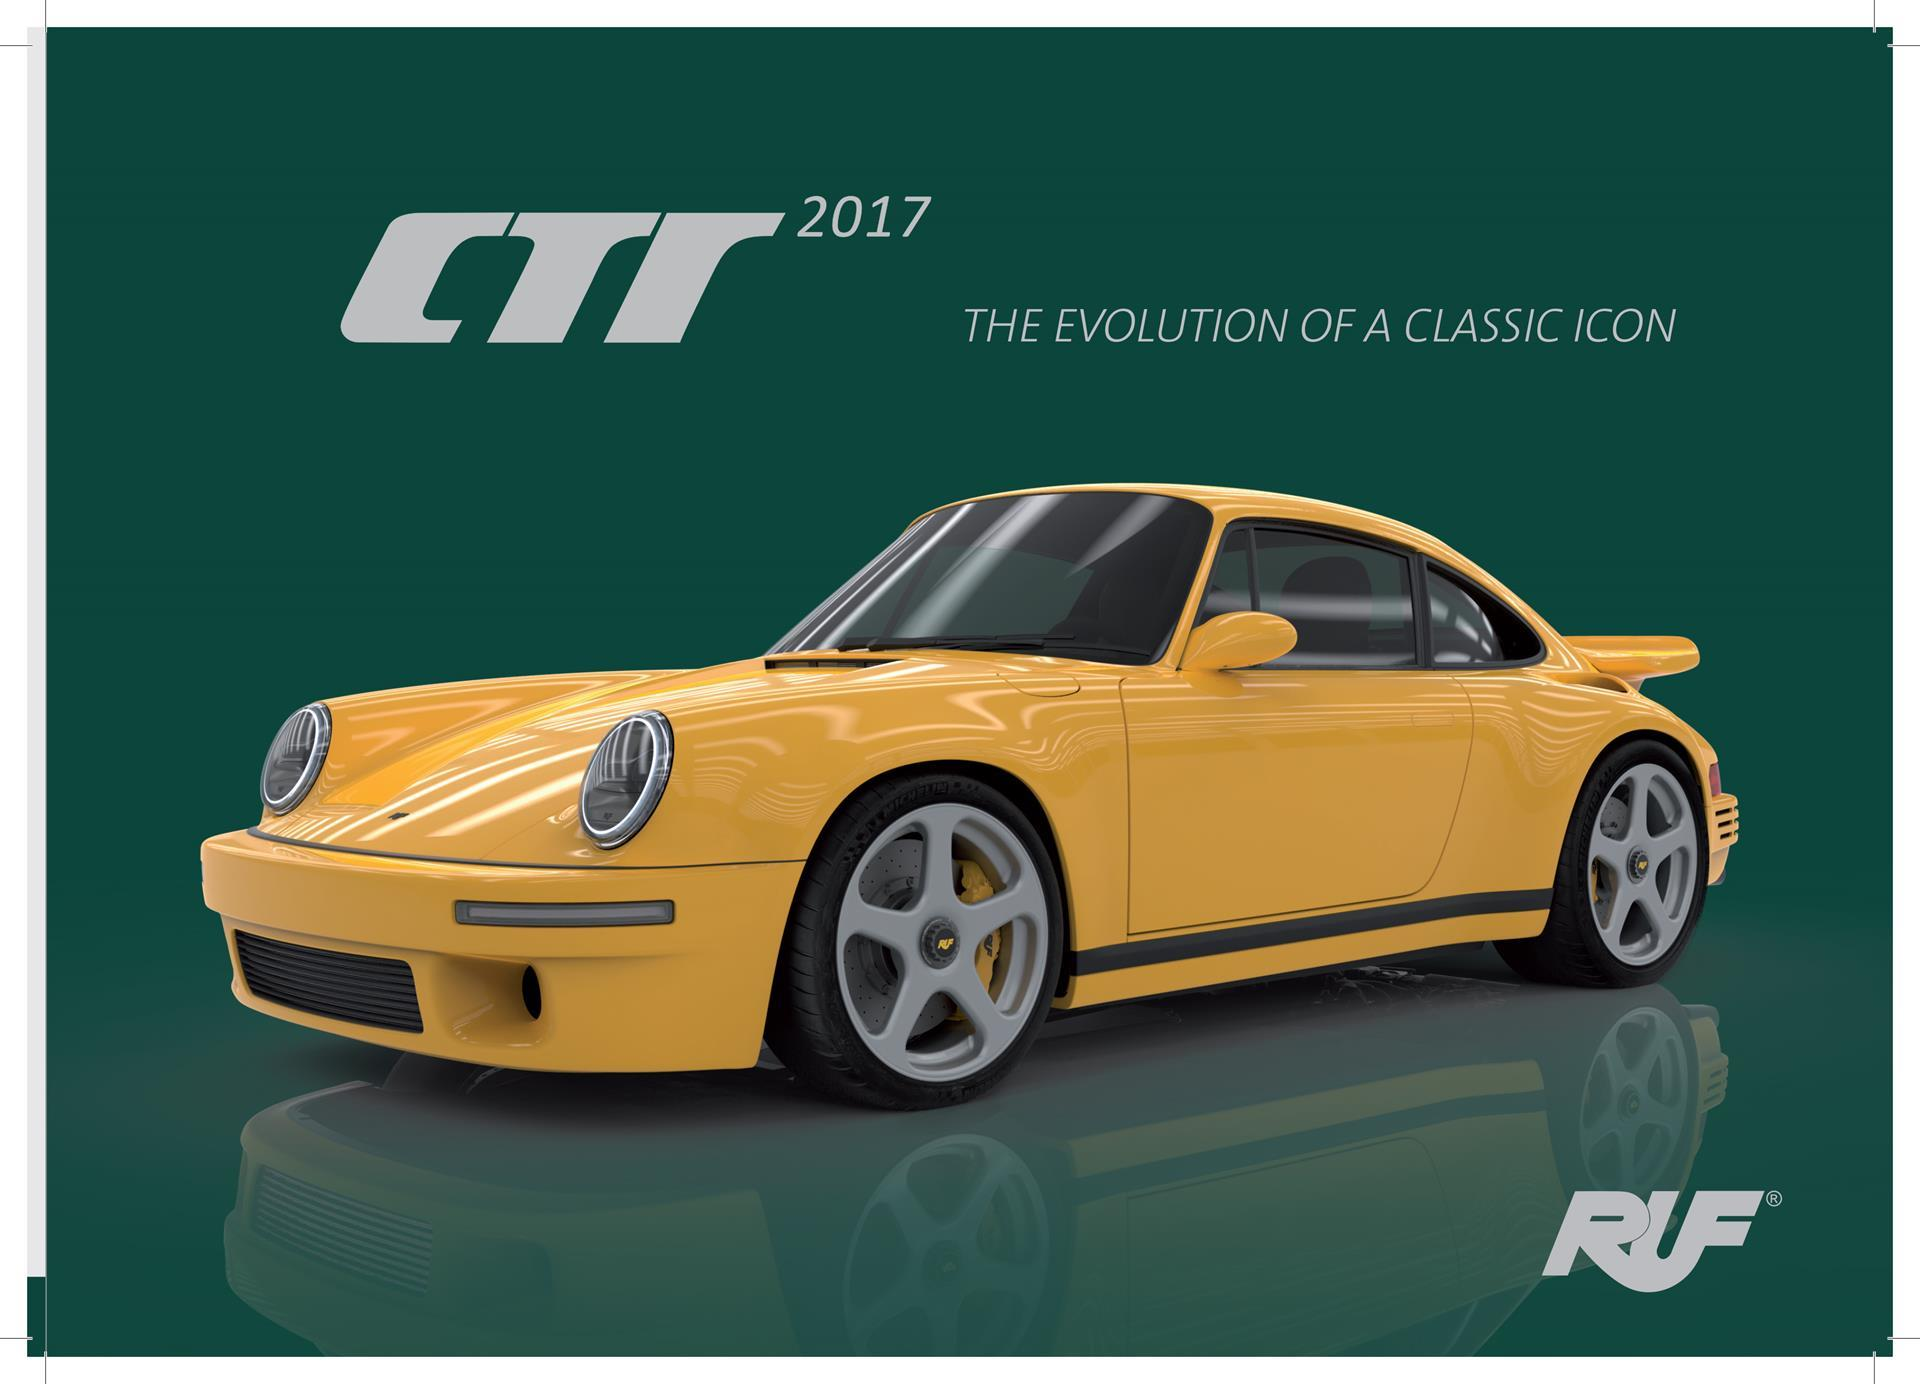 2017 Ruf Ctr News And Information Research And Pricing